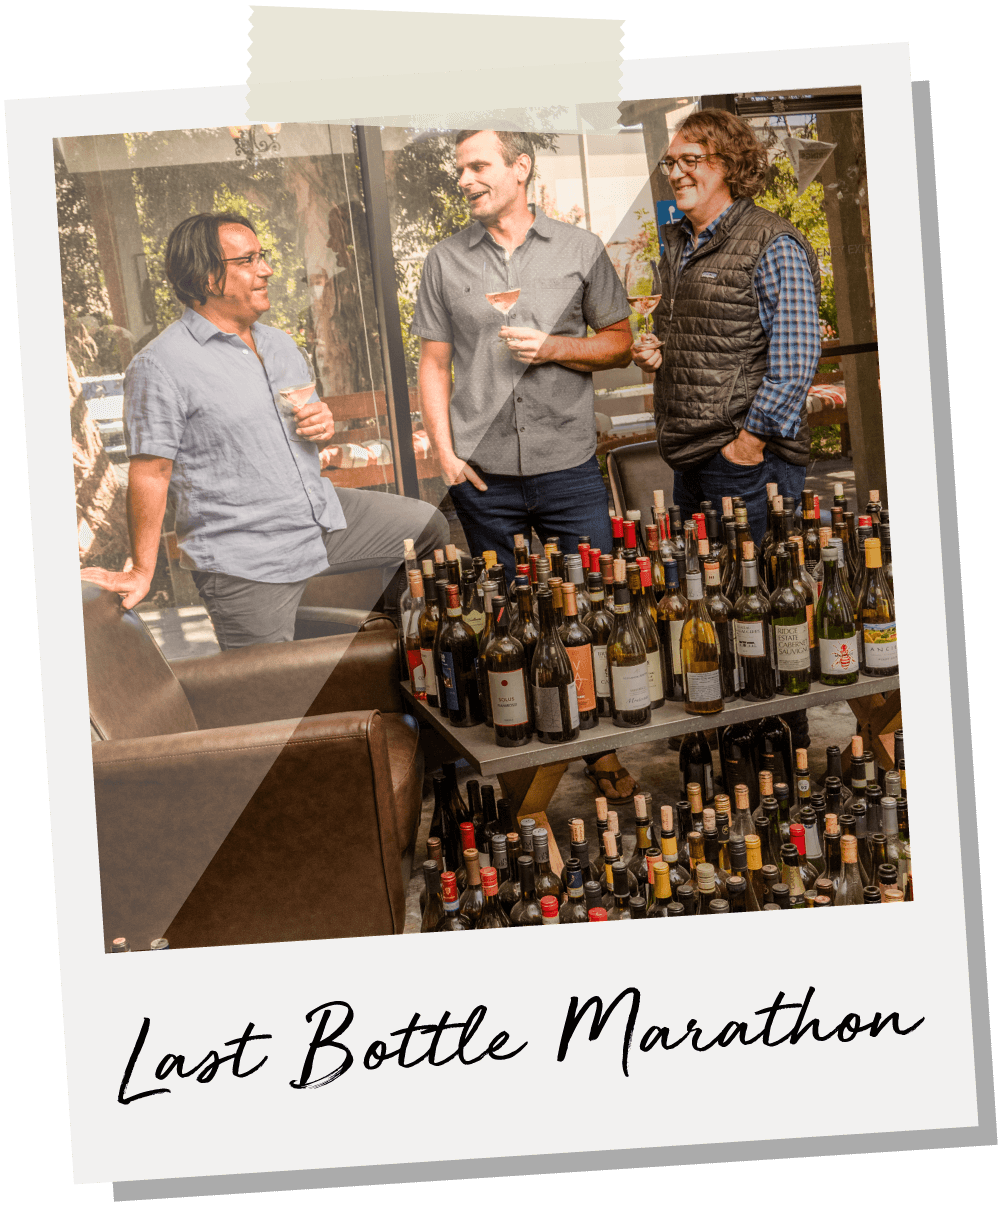 The founders of Last Bottle, Stefan, Cory and Brent.